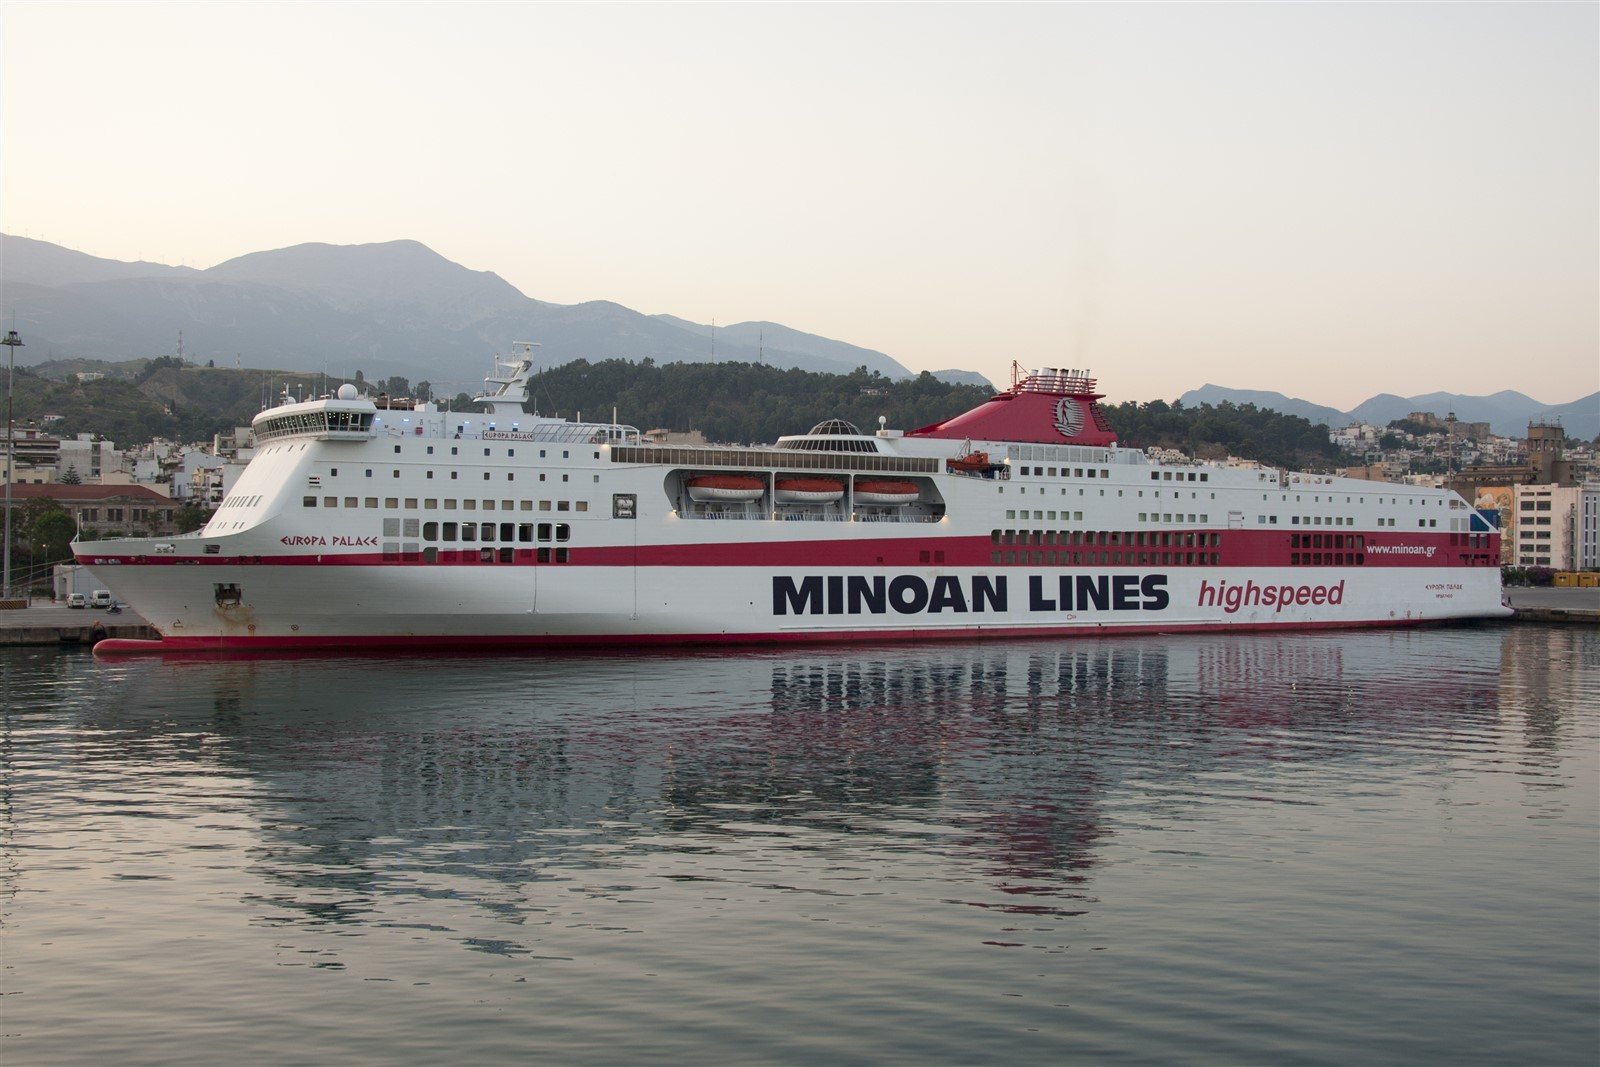 MINOAN LINES HSF Europa Palace 103_Personale 29Gi12